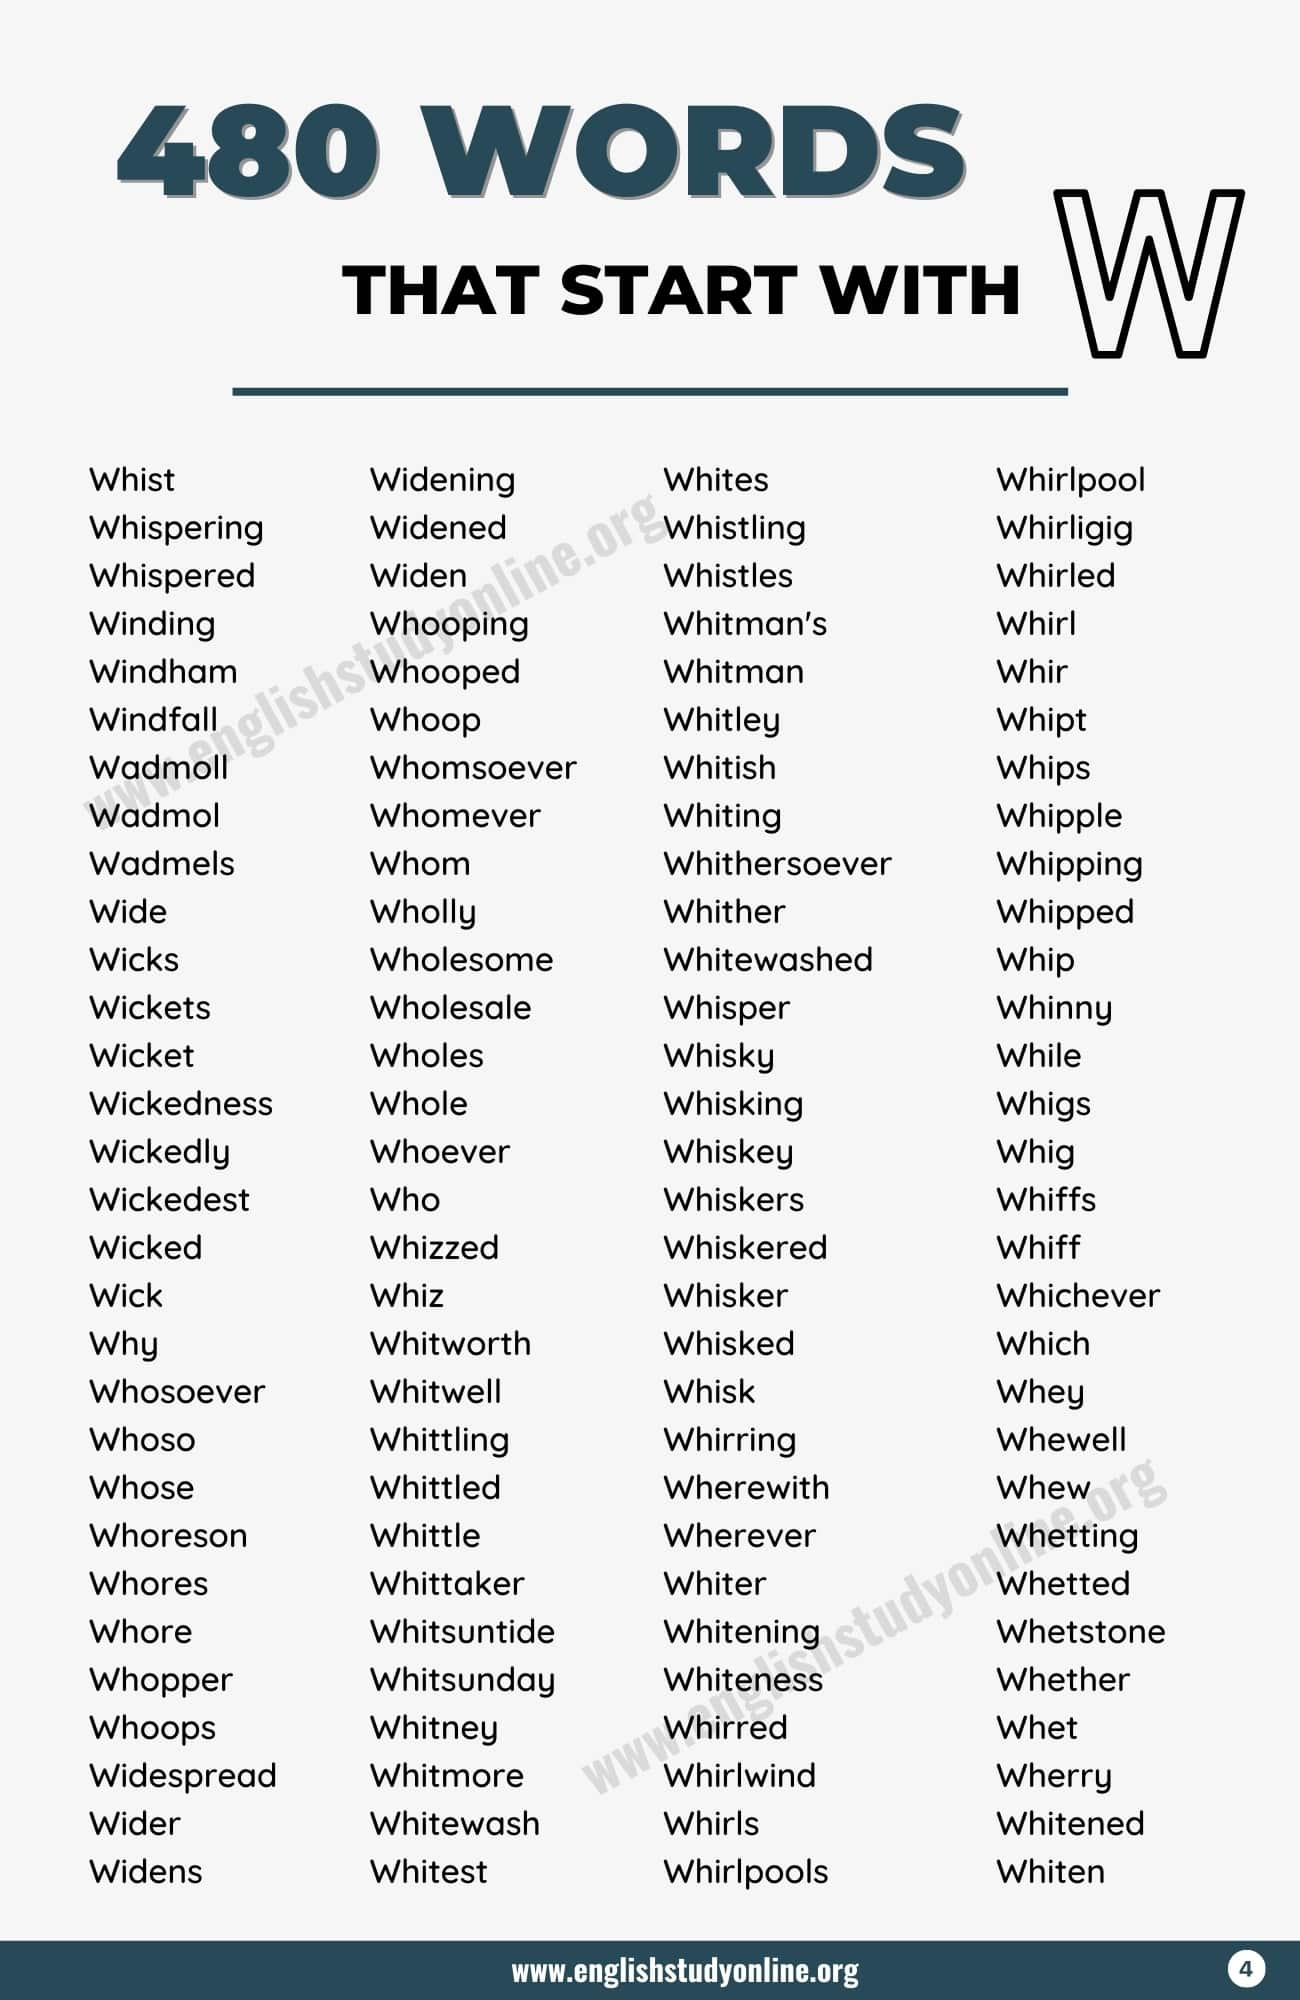 Words that Start with W